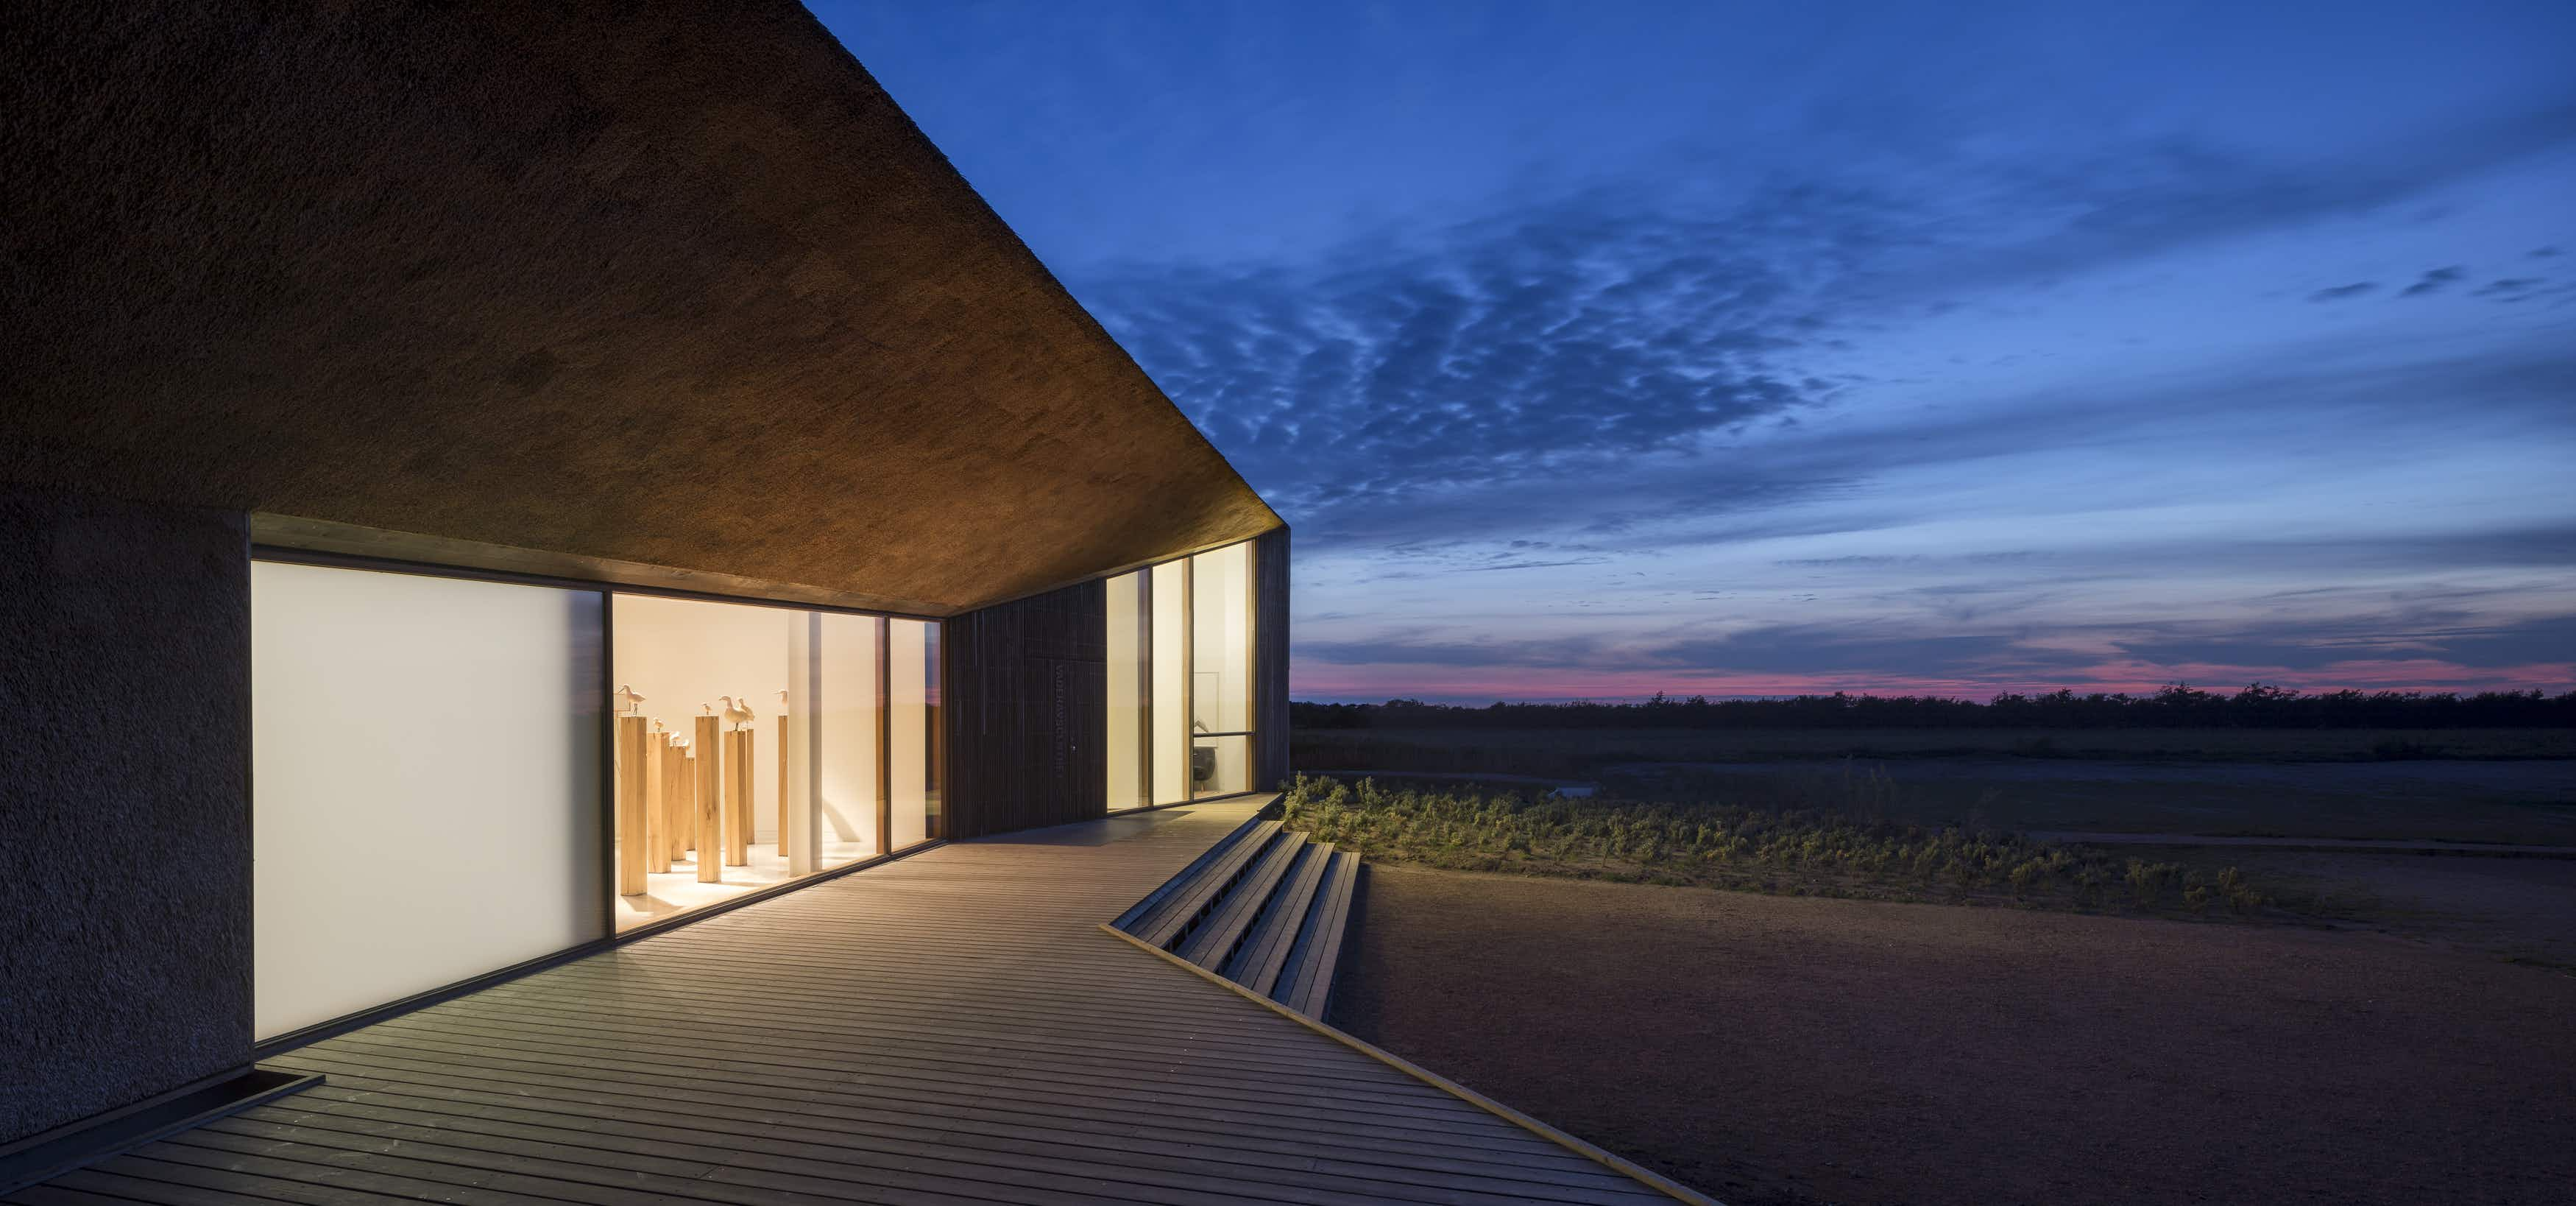 Are these new museums among the most beautiful buildings in the world?